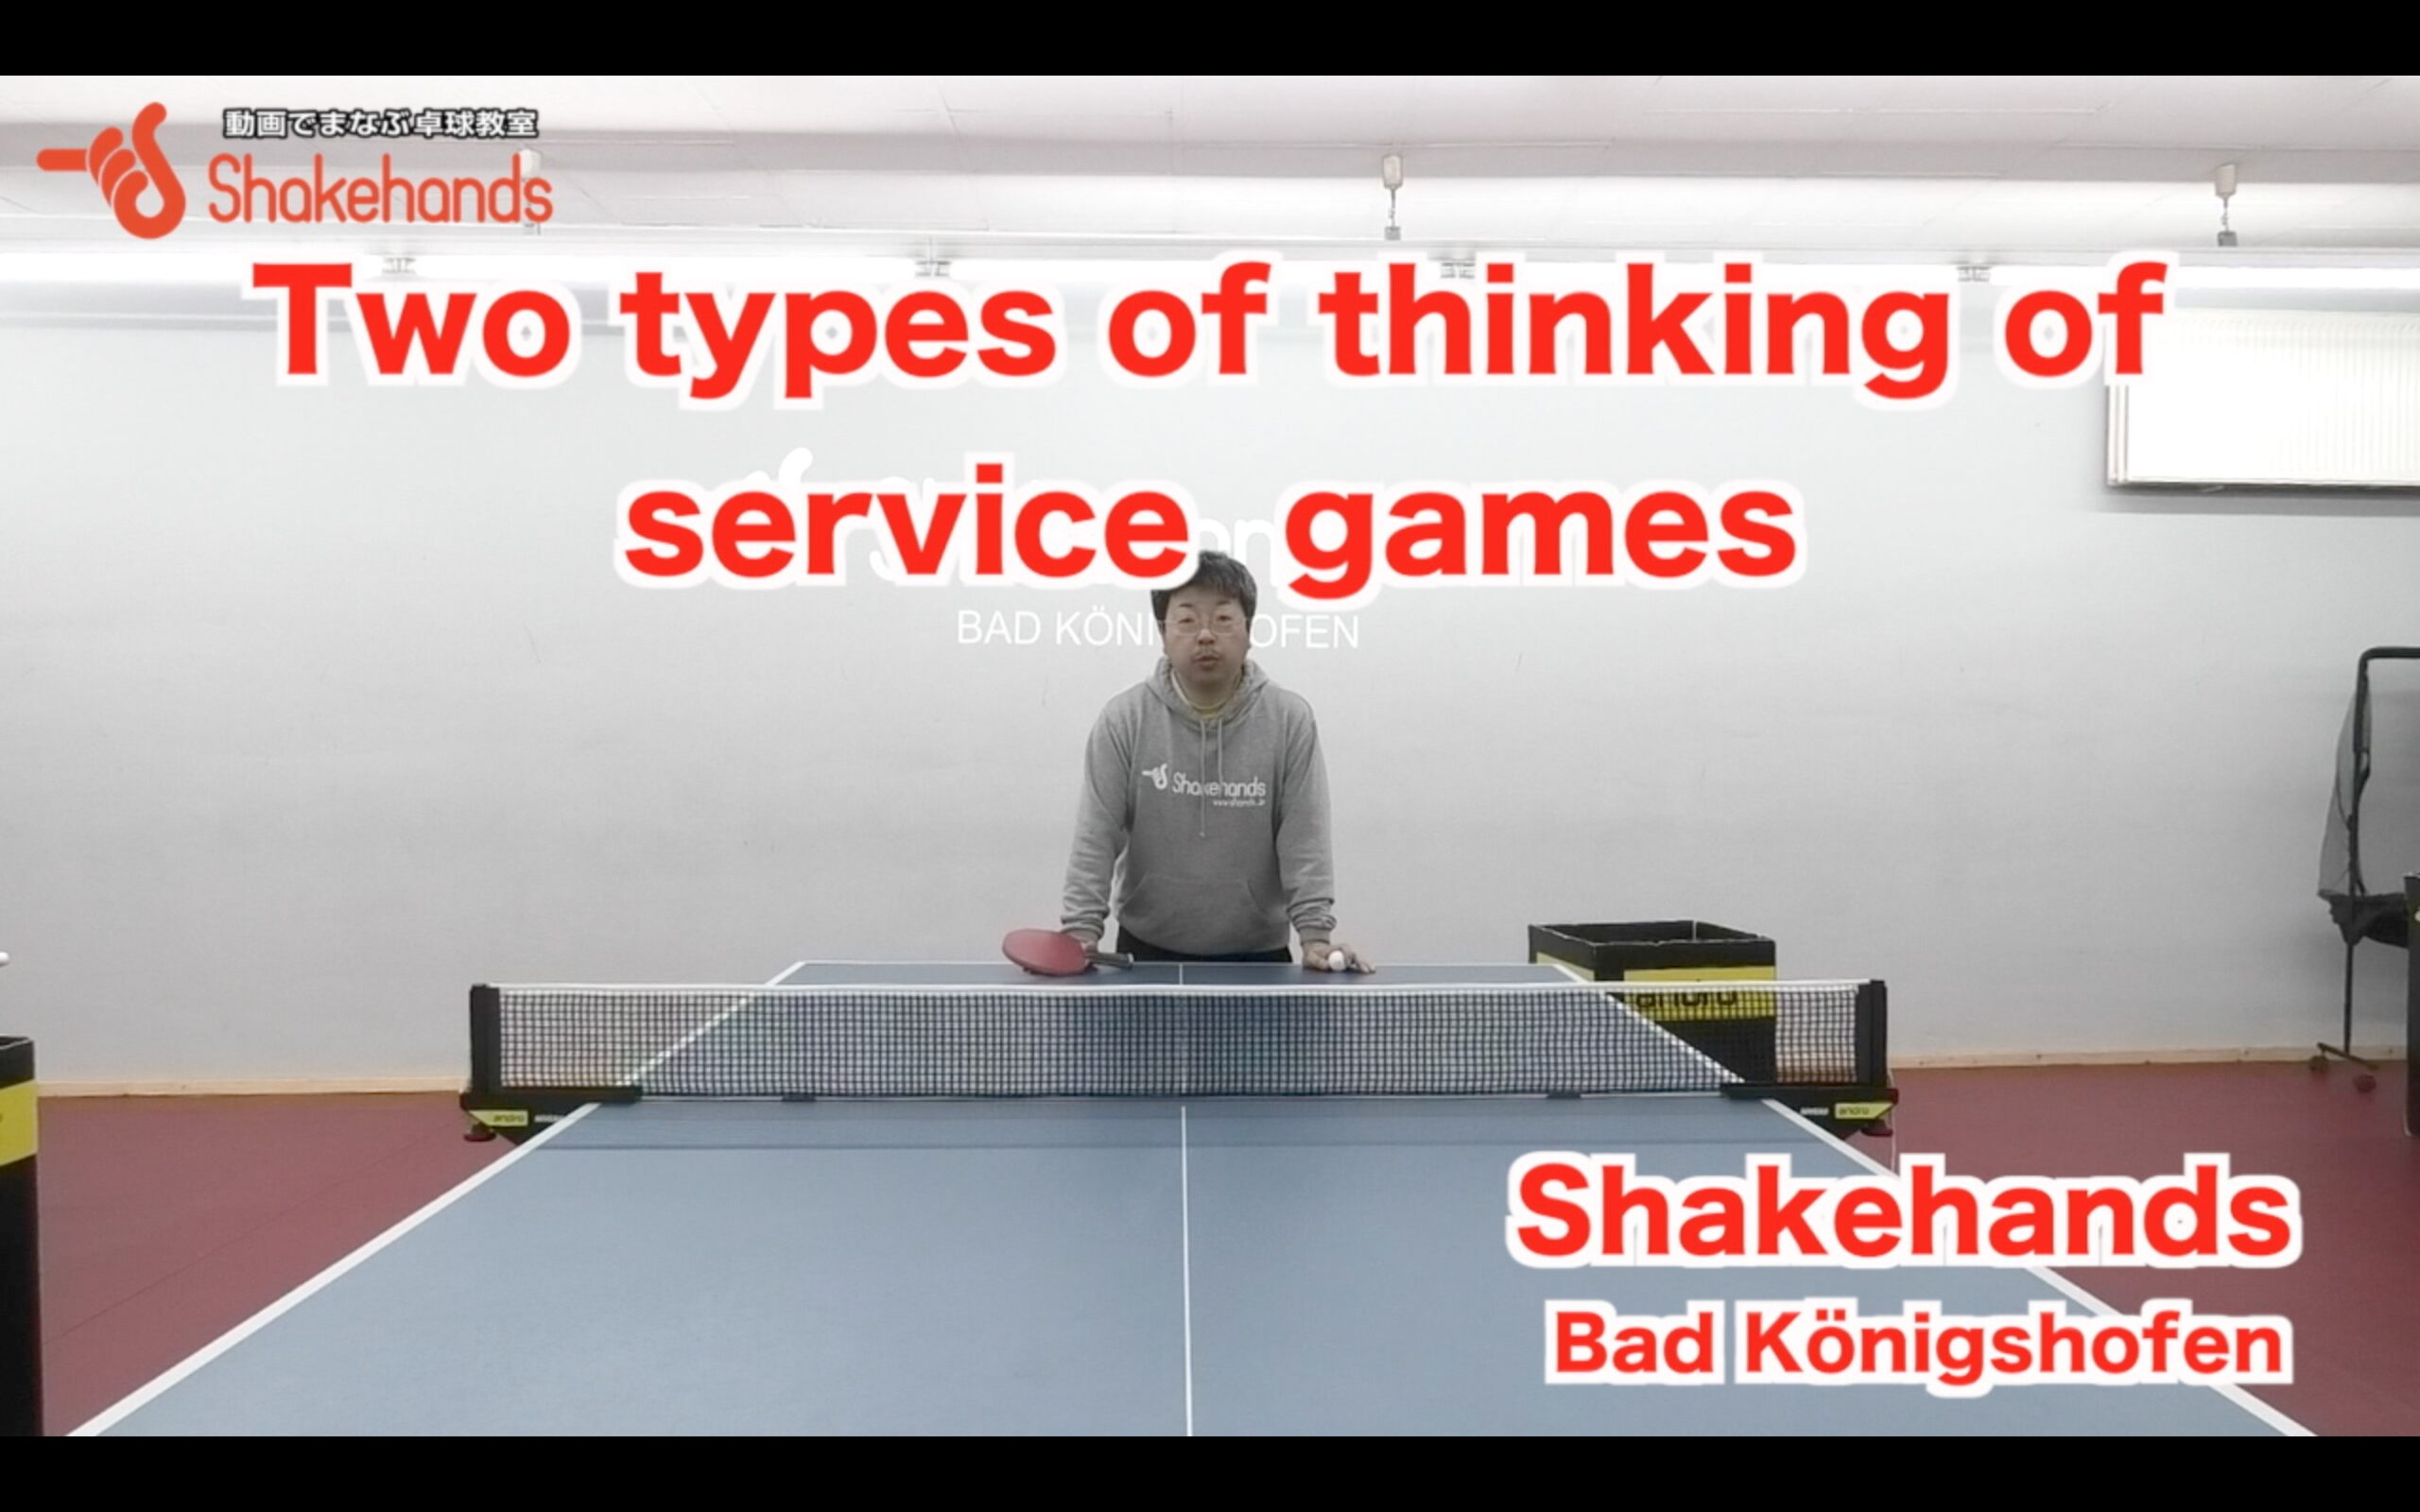 Two types of thinking of service games